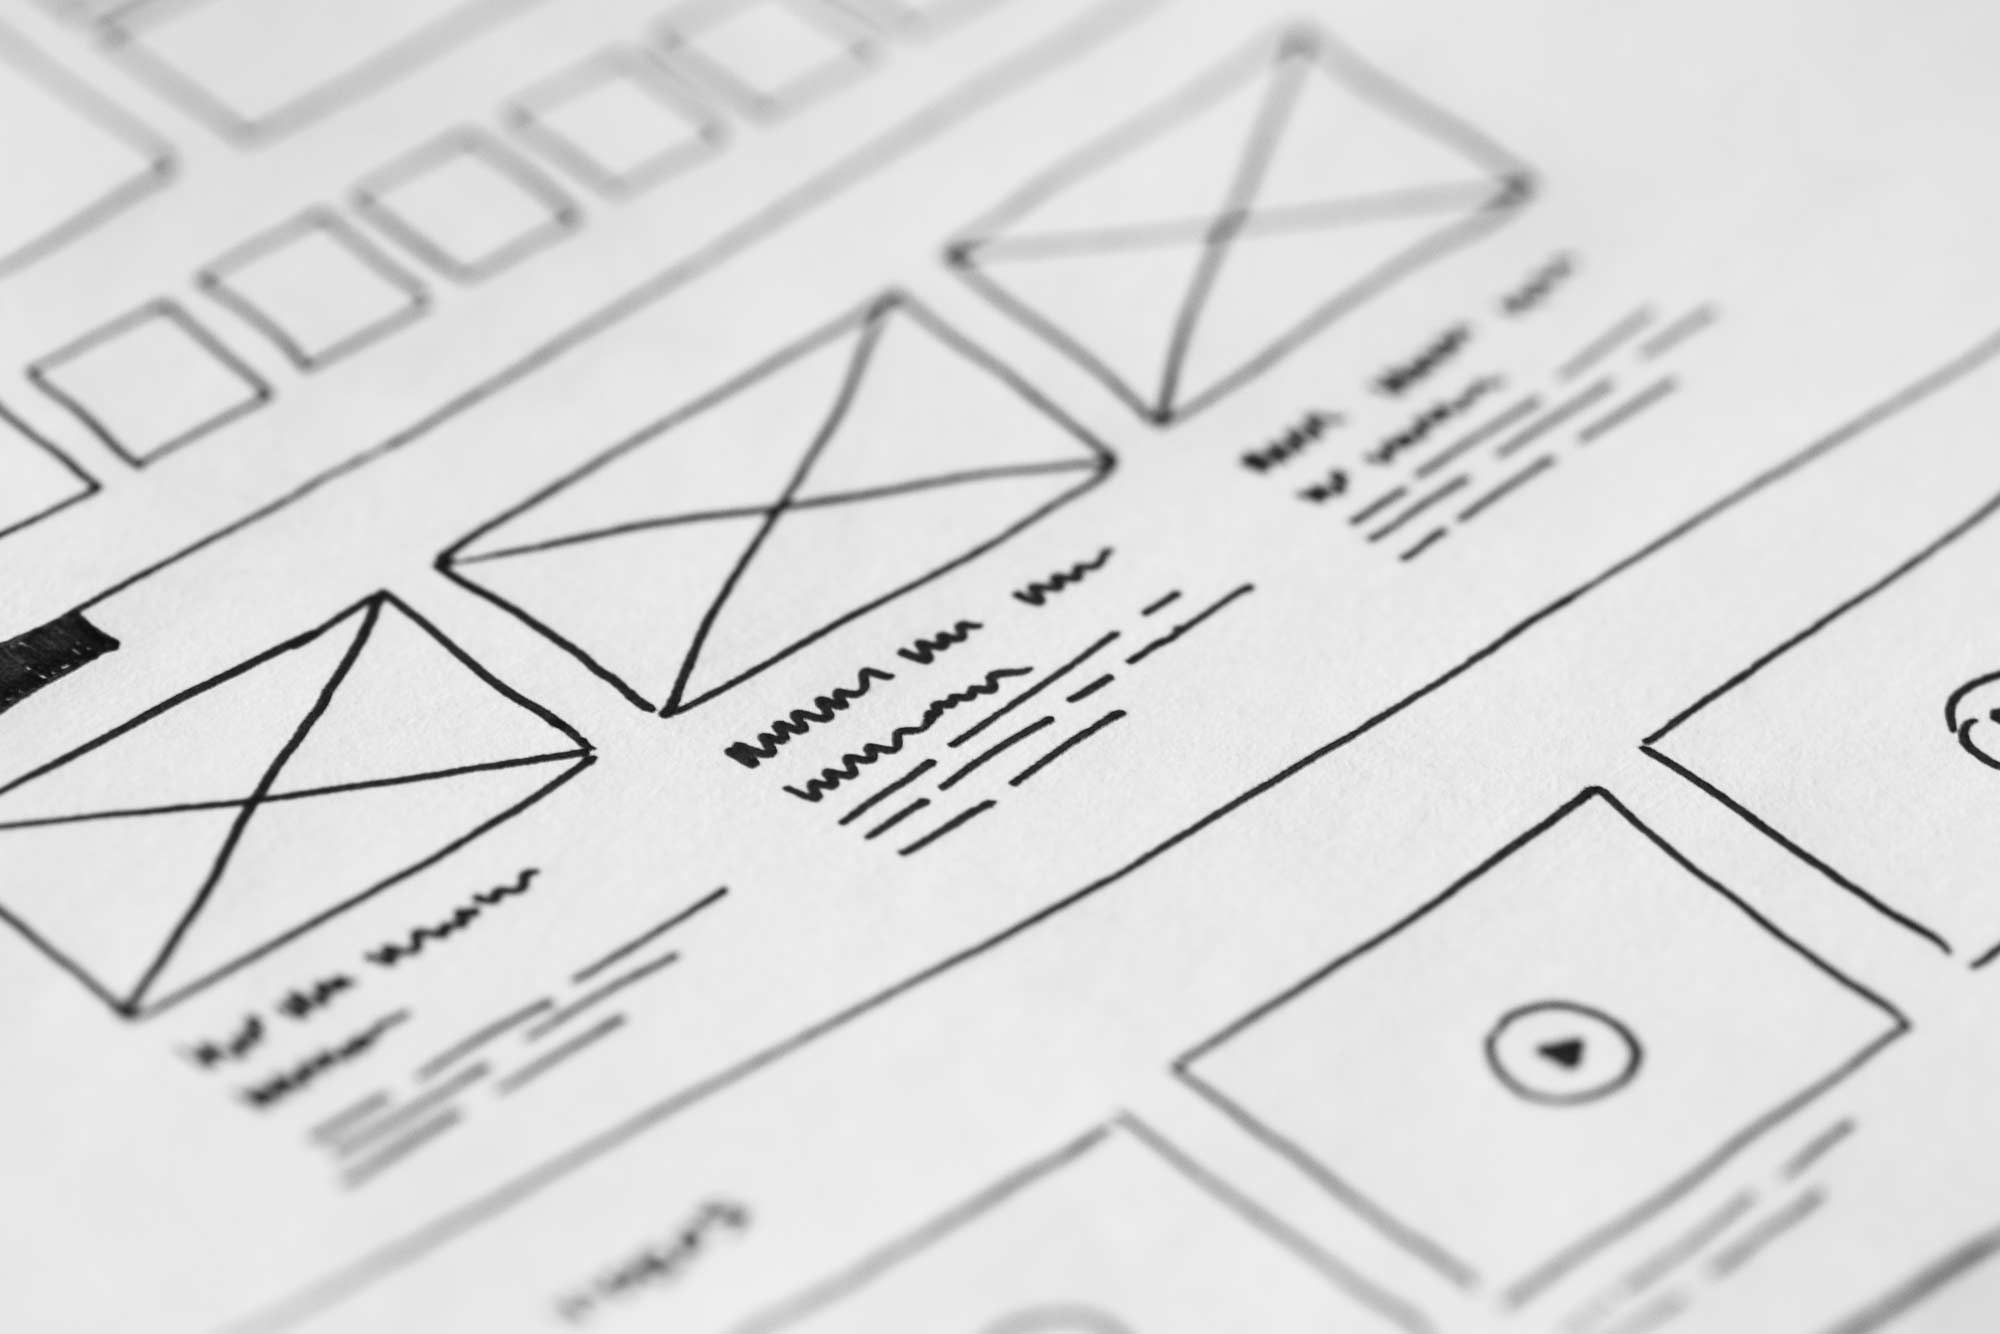 Illustration of web design wireframe